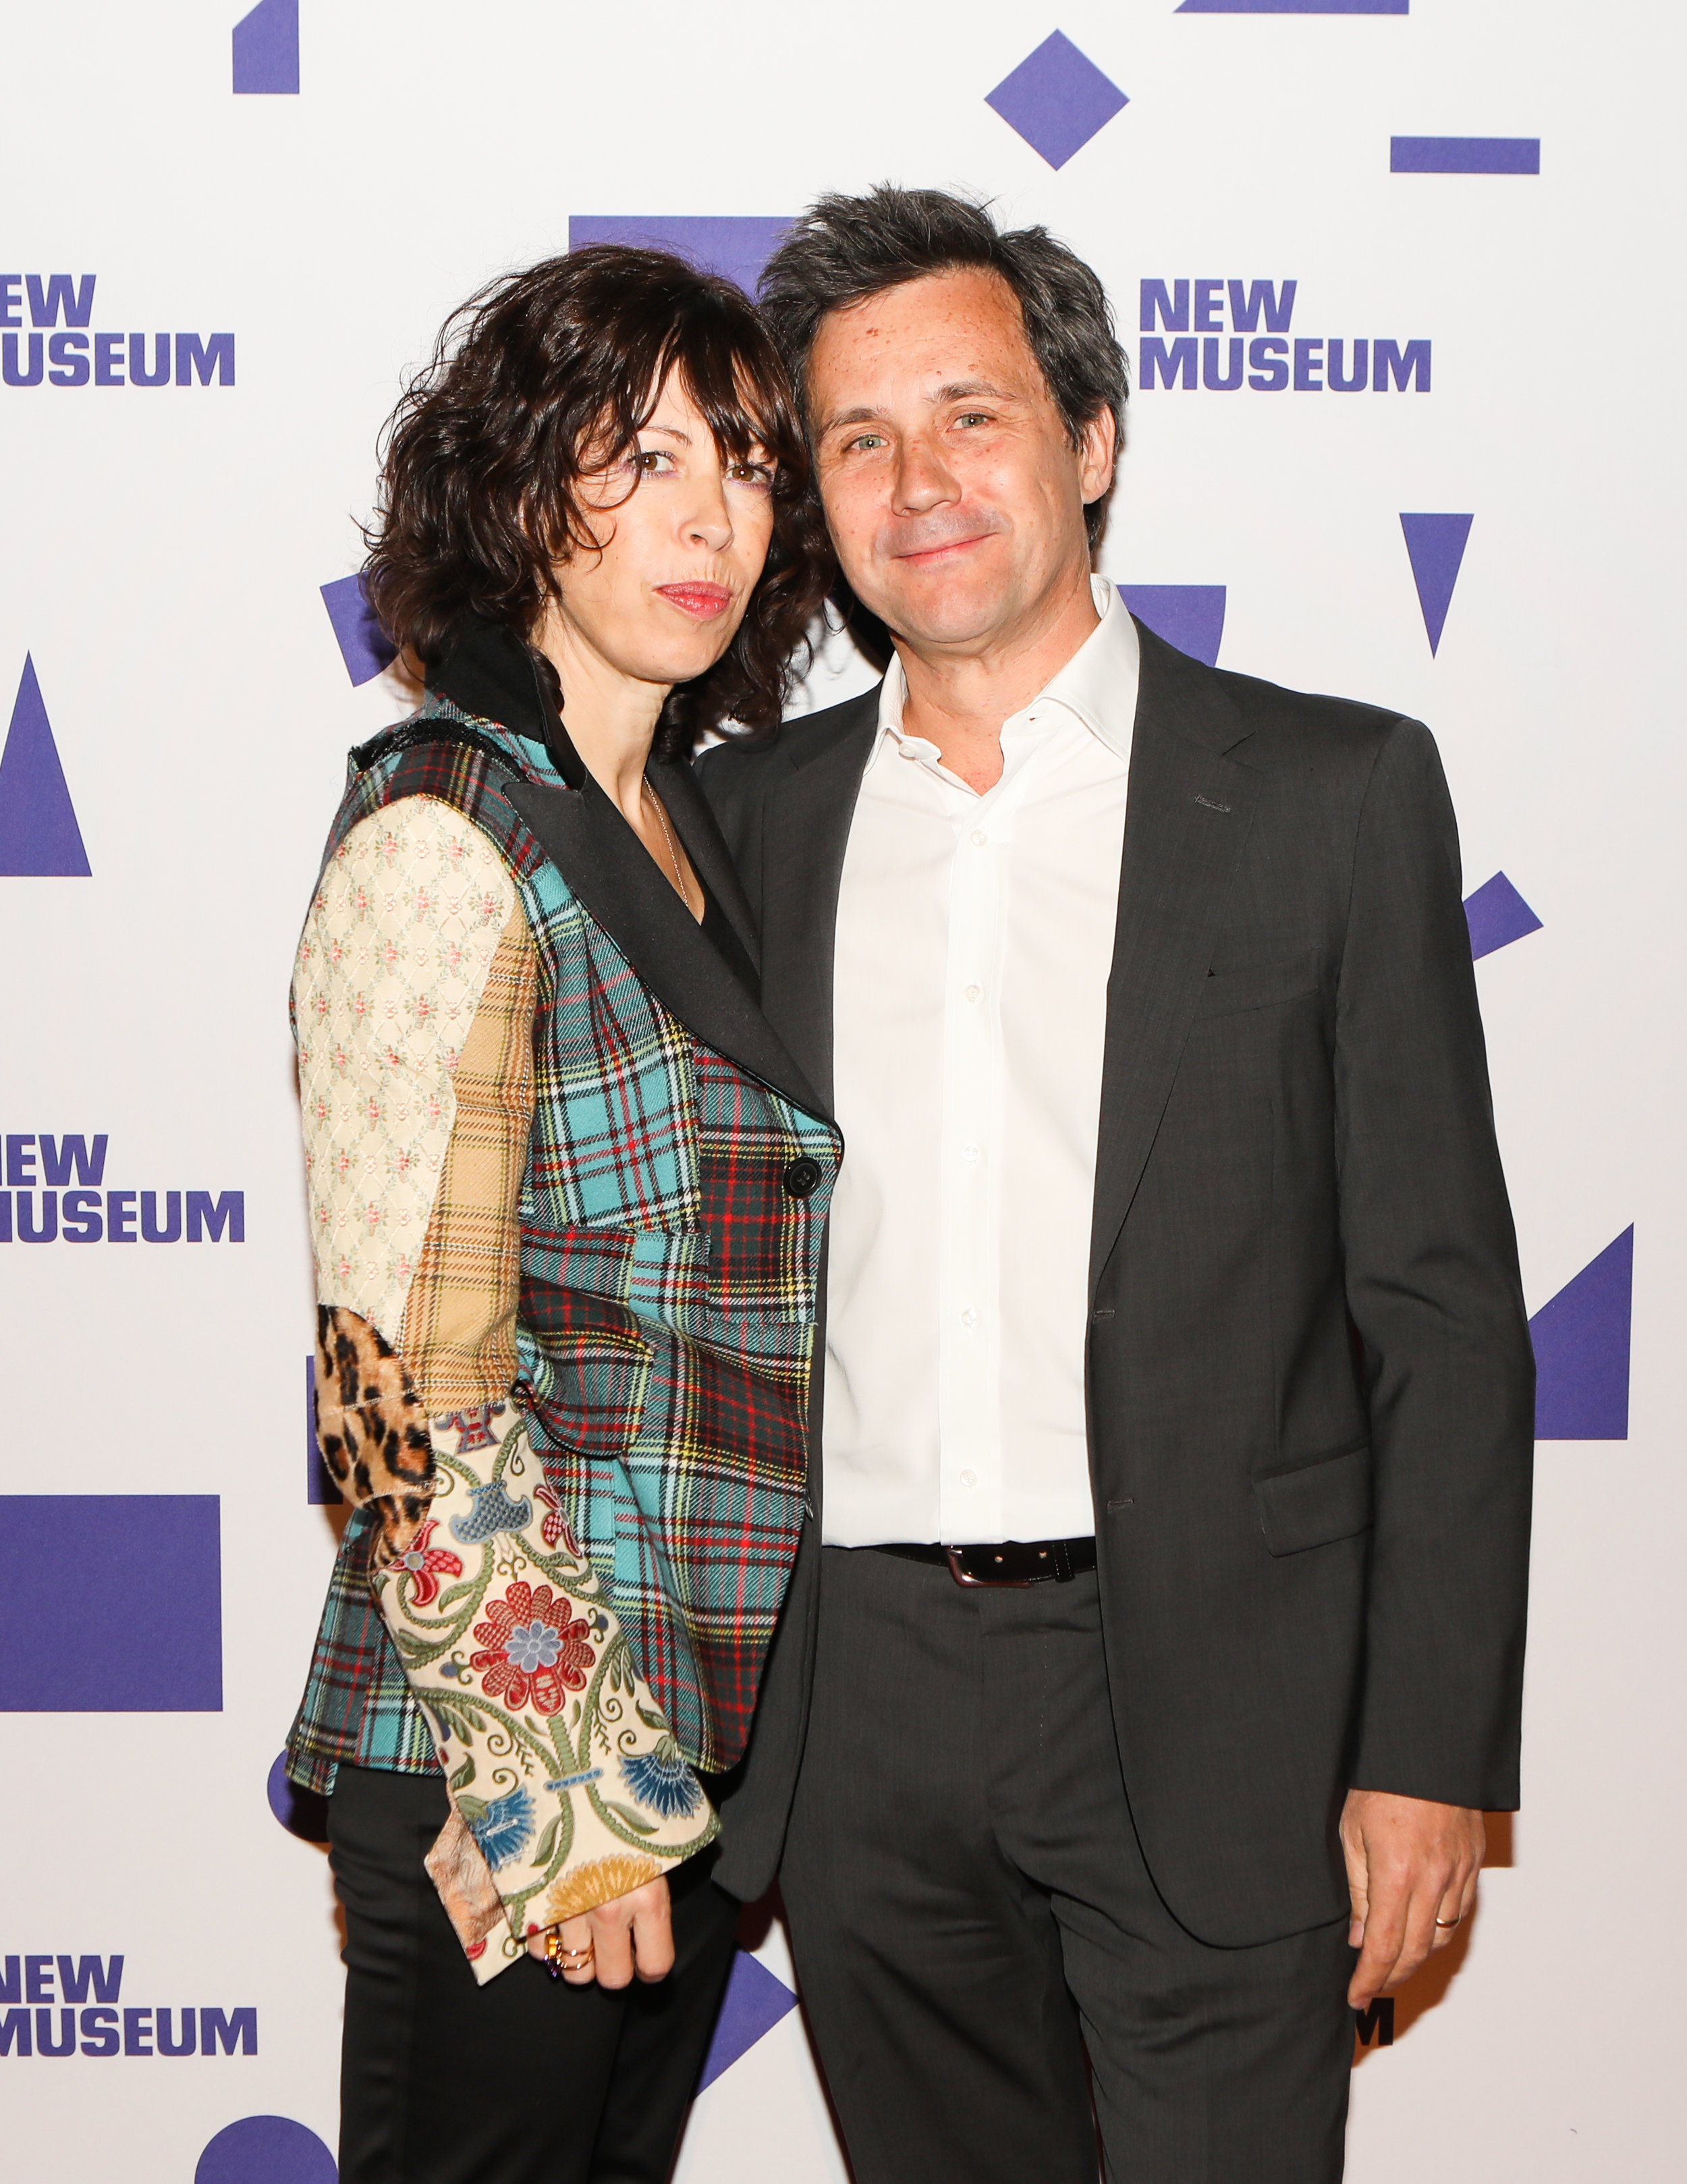 Cecily Brown and Nicolai Ouroussoff